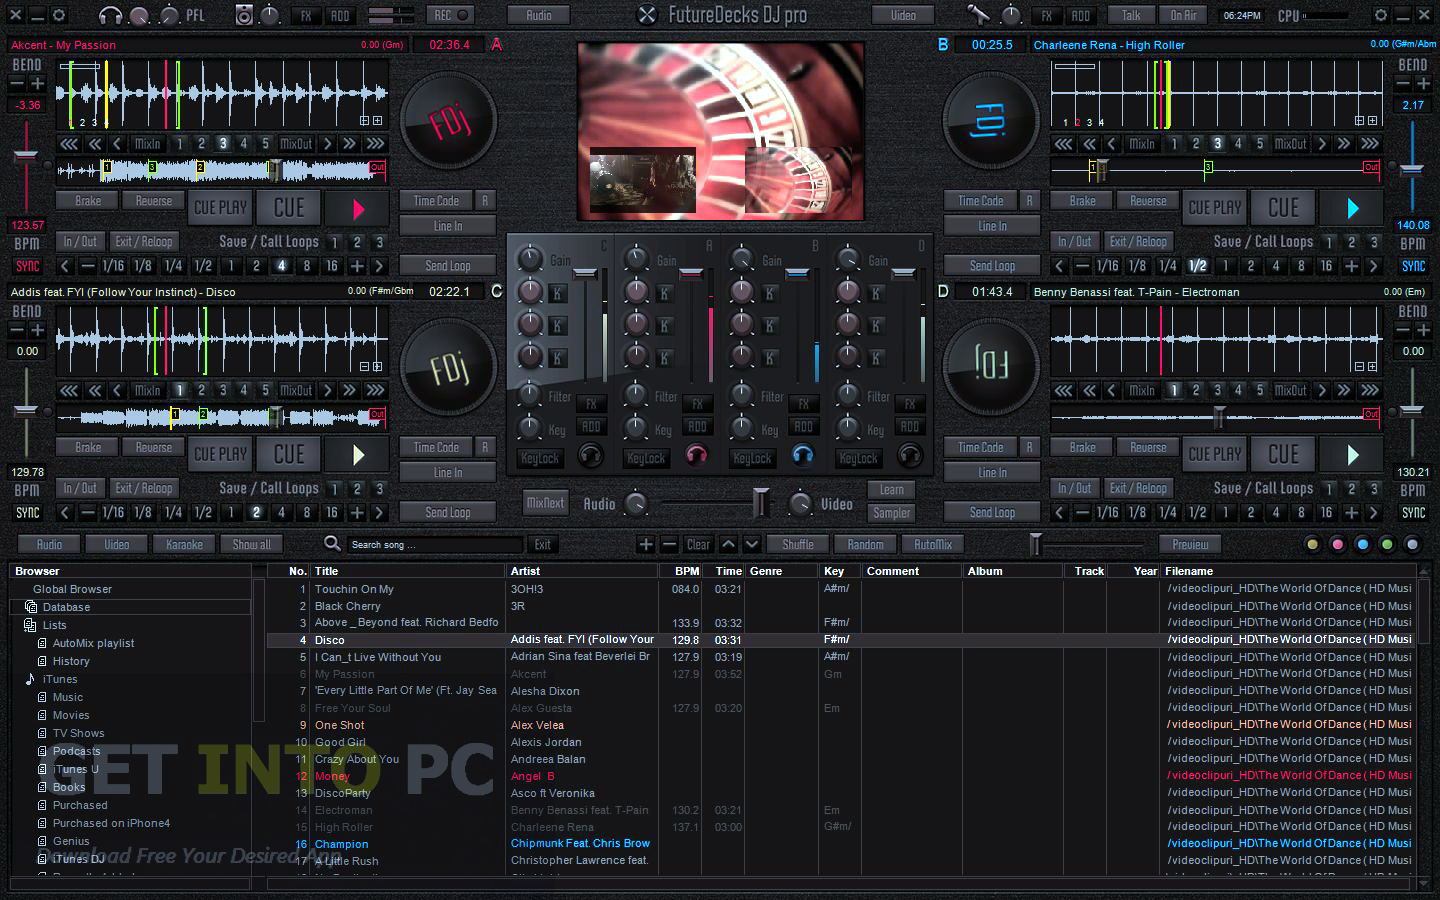 Installing FutureDecks DJ Pro Free Download